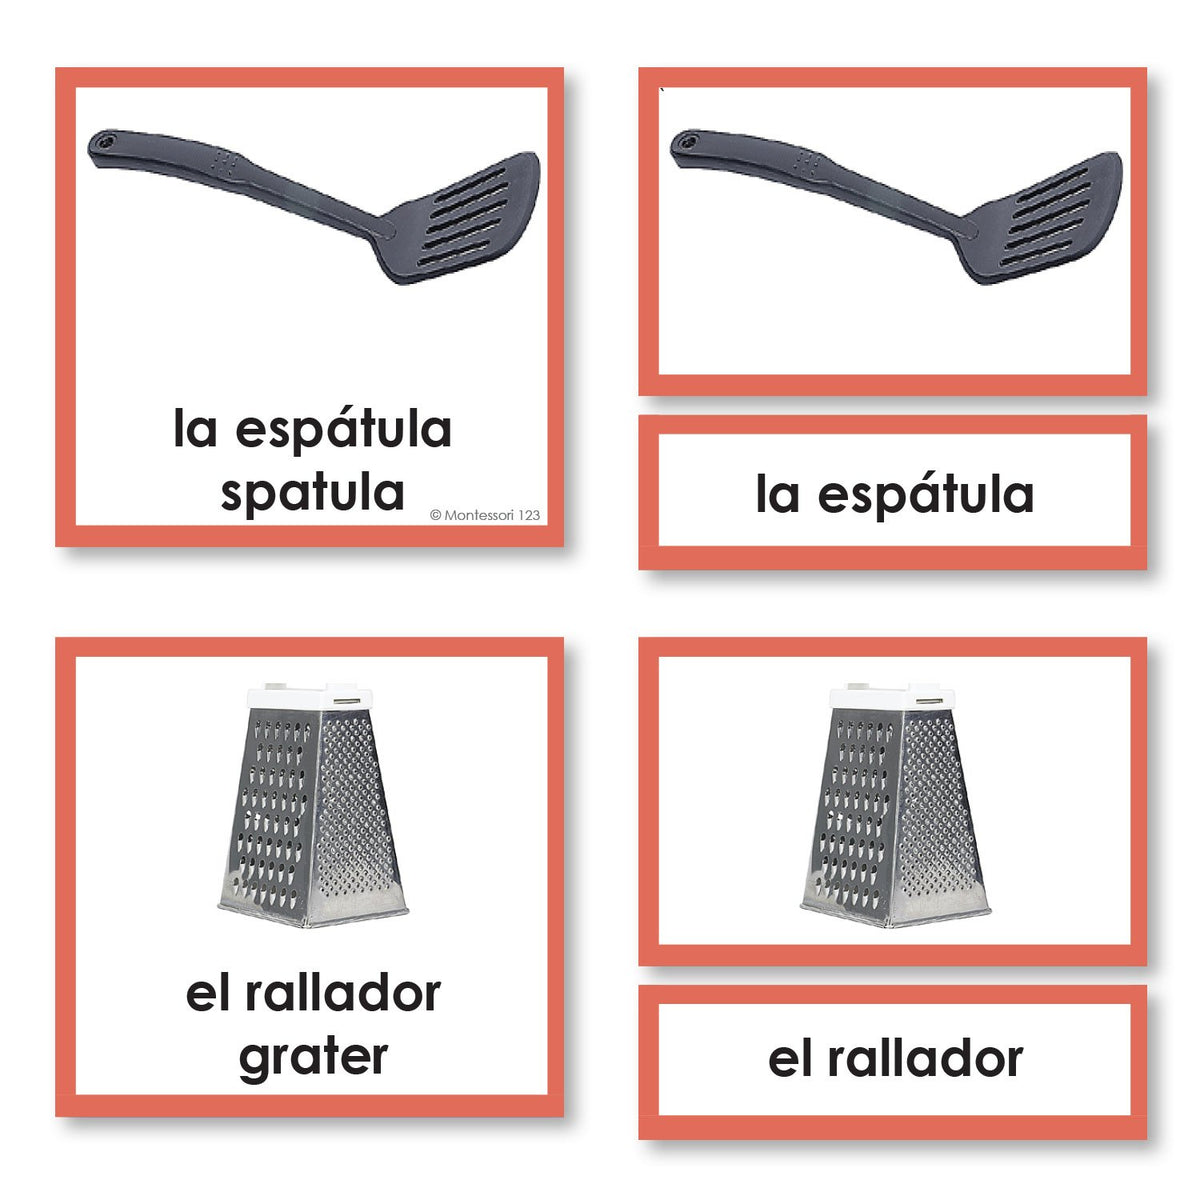 Spanish Language Kitchen 3-Part Cards With Photographs